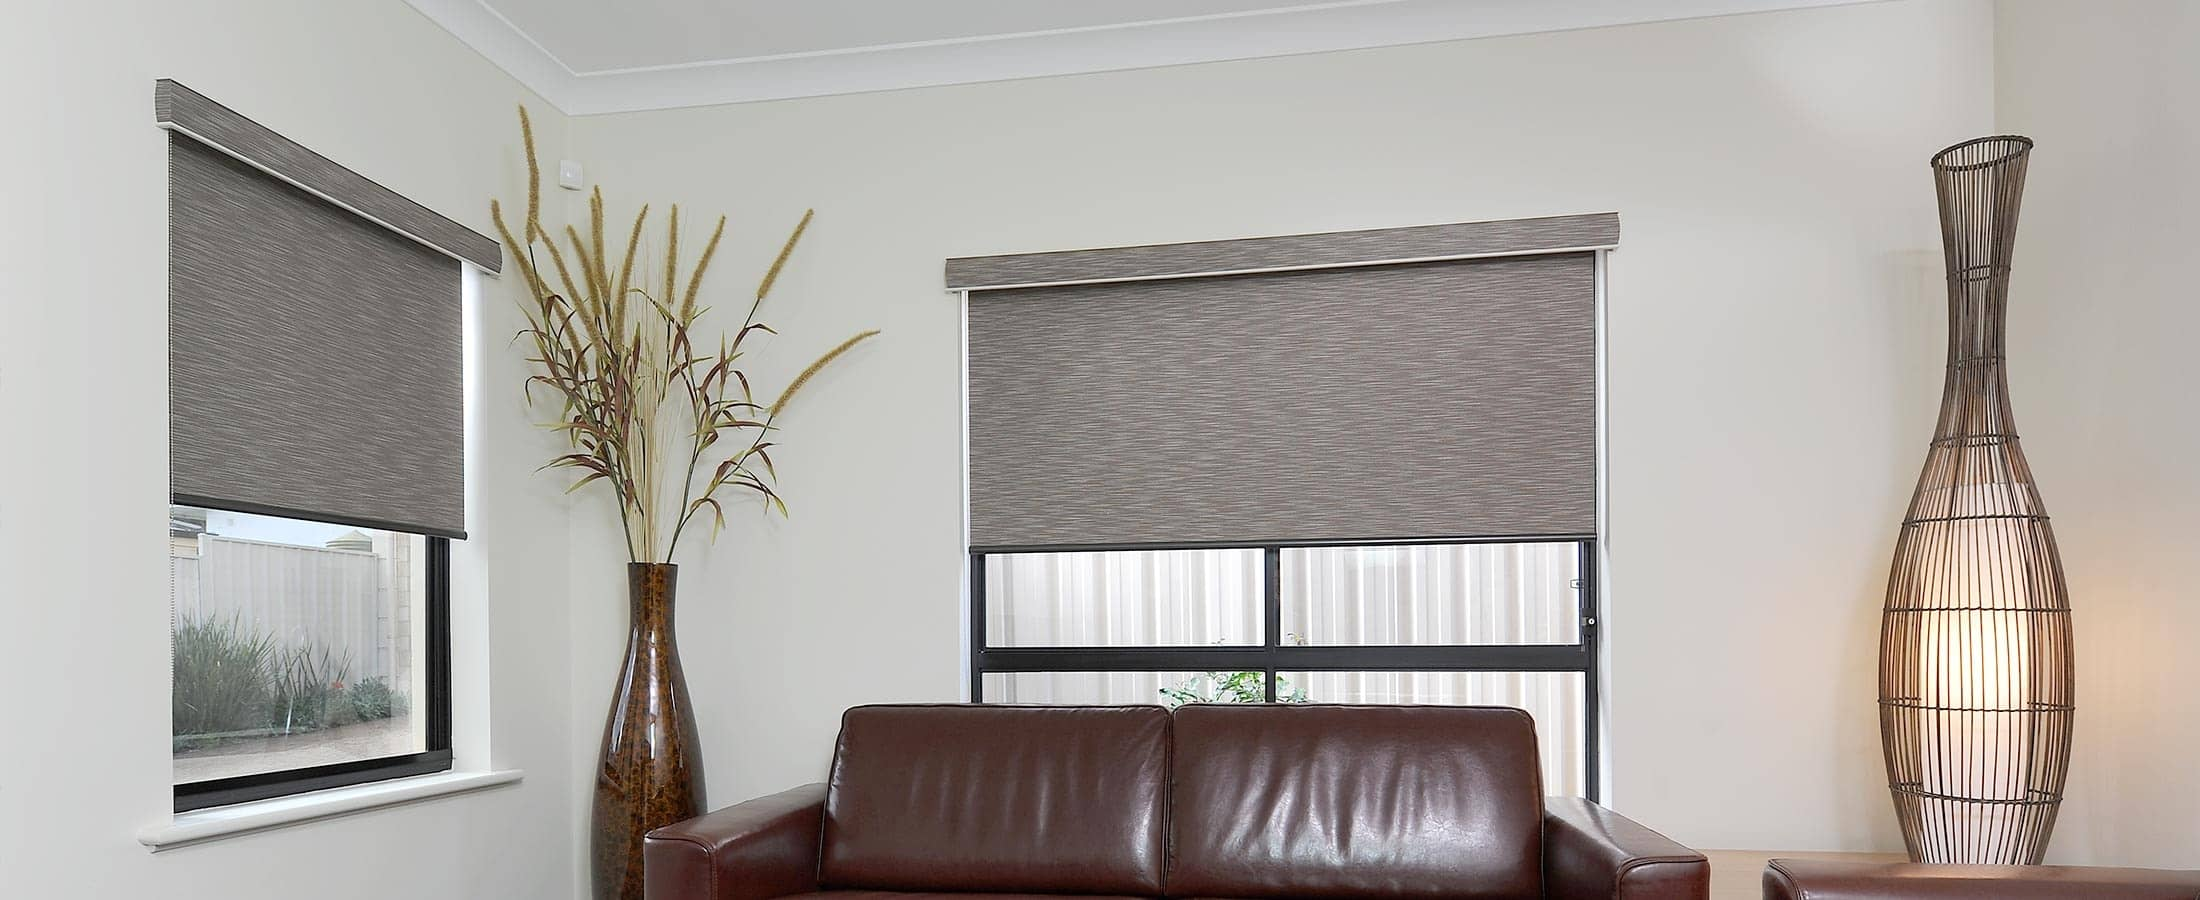 Perth Superior Roller Blinds Supplied And Installed By